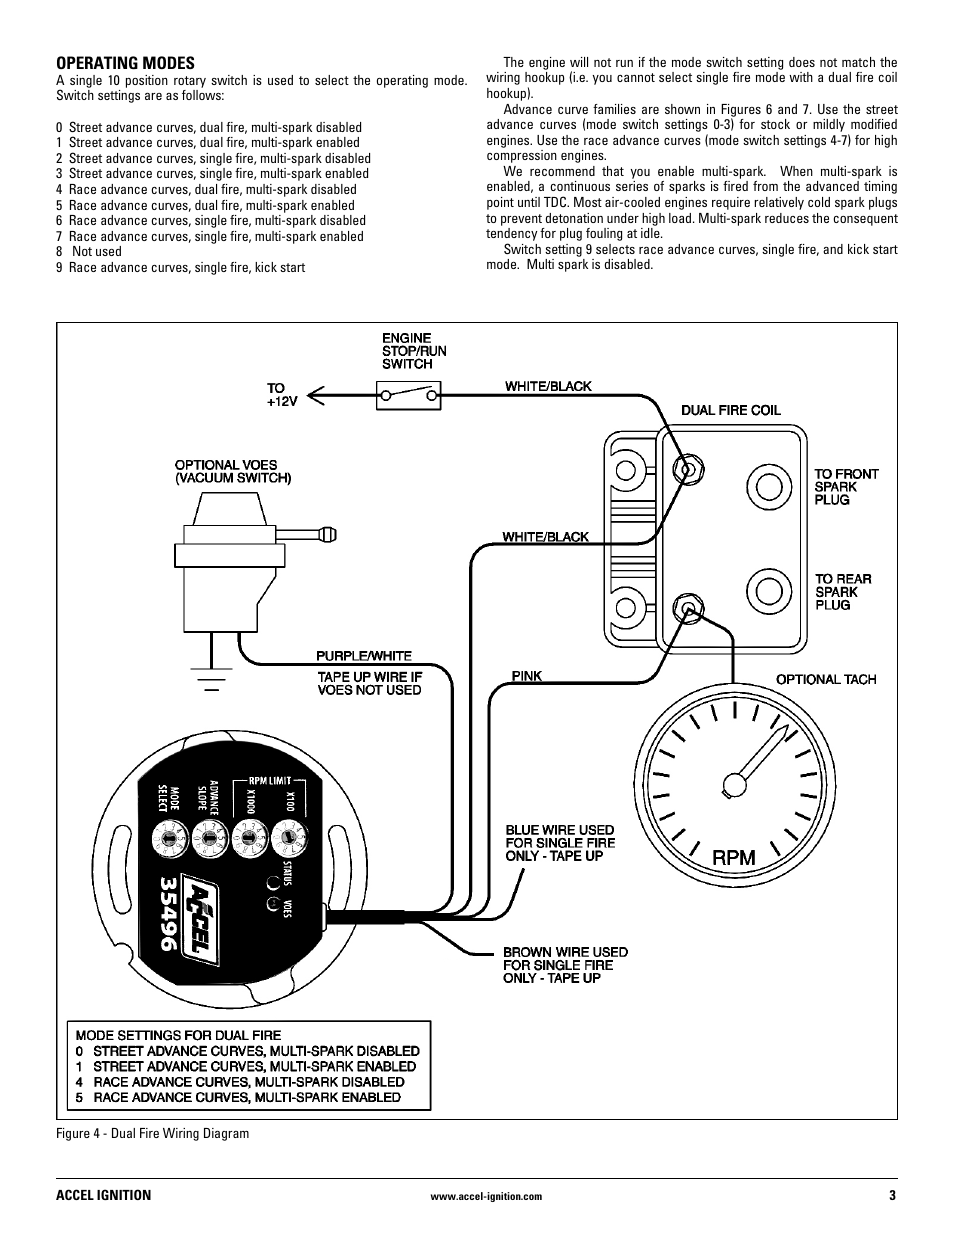 mallory ignition accel ignition 35496 page3 mallory ignition accel ignition 35496 user manual page 3 8 mallory ignition wiring diagram at couponss.co